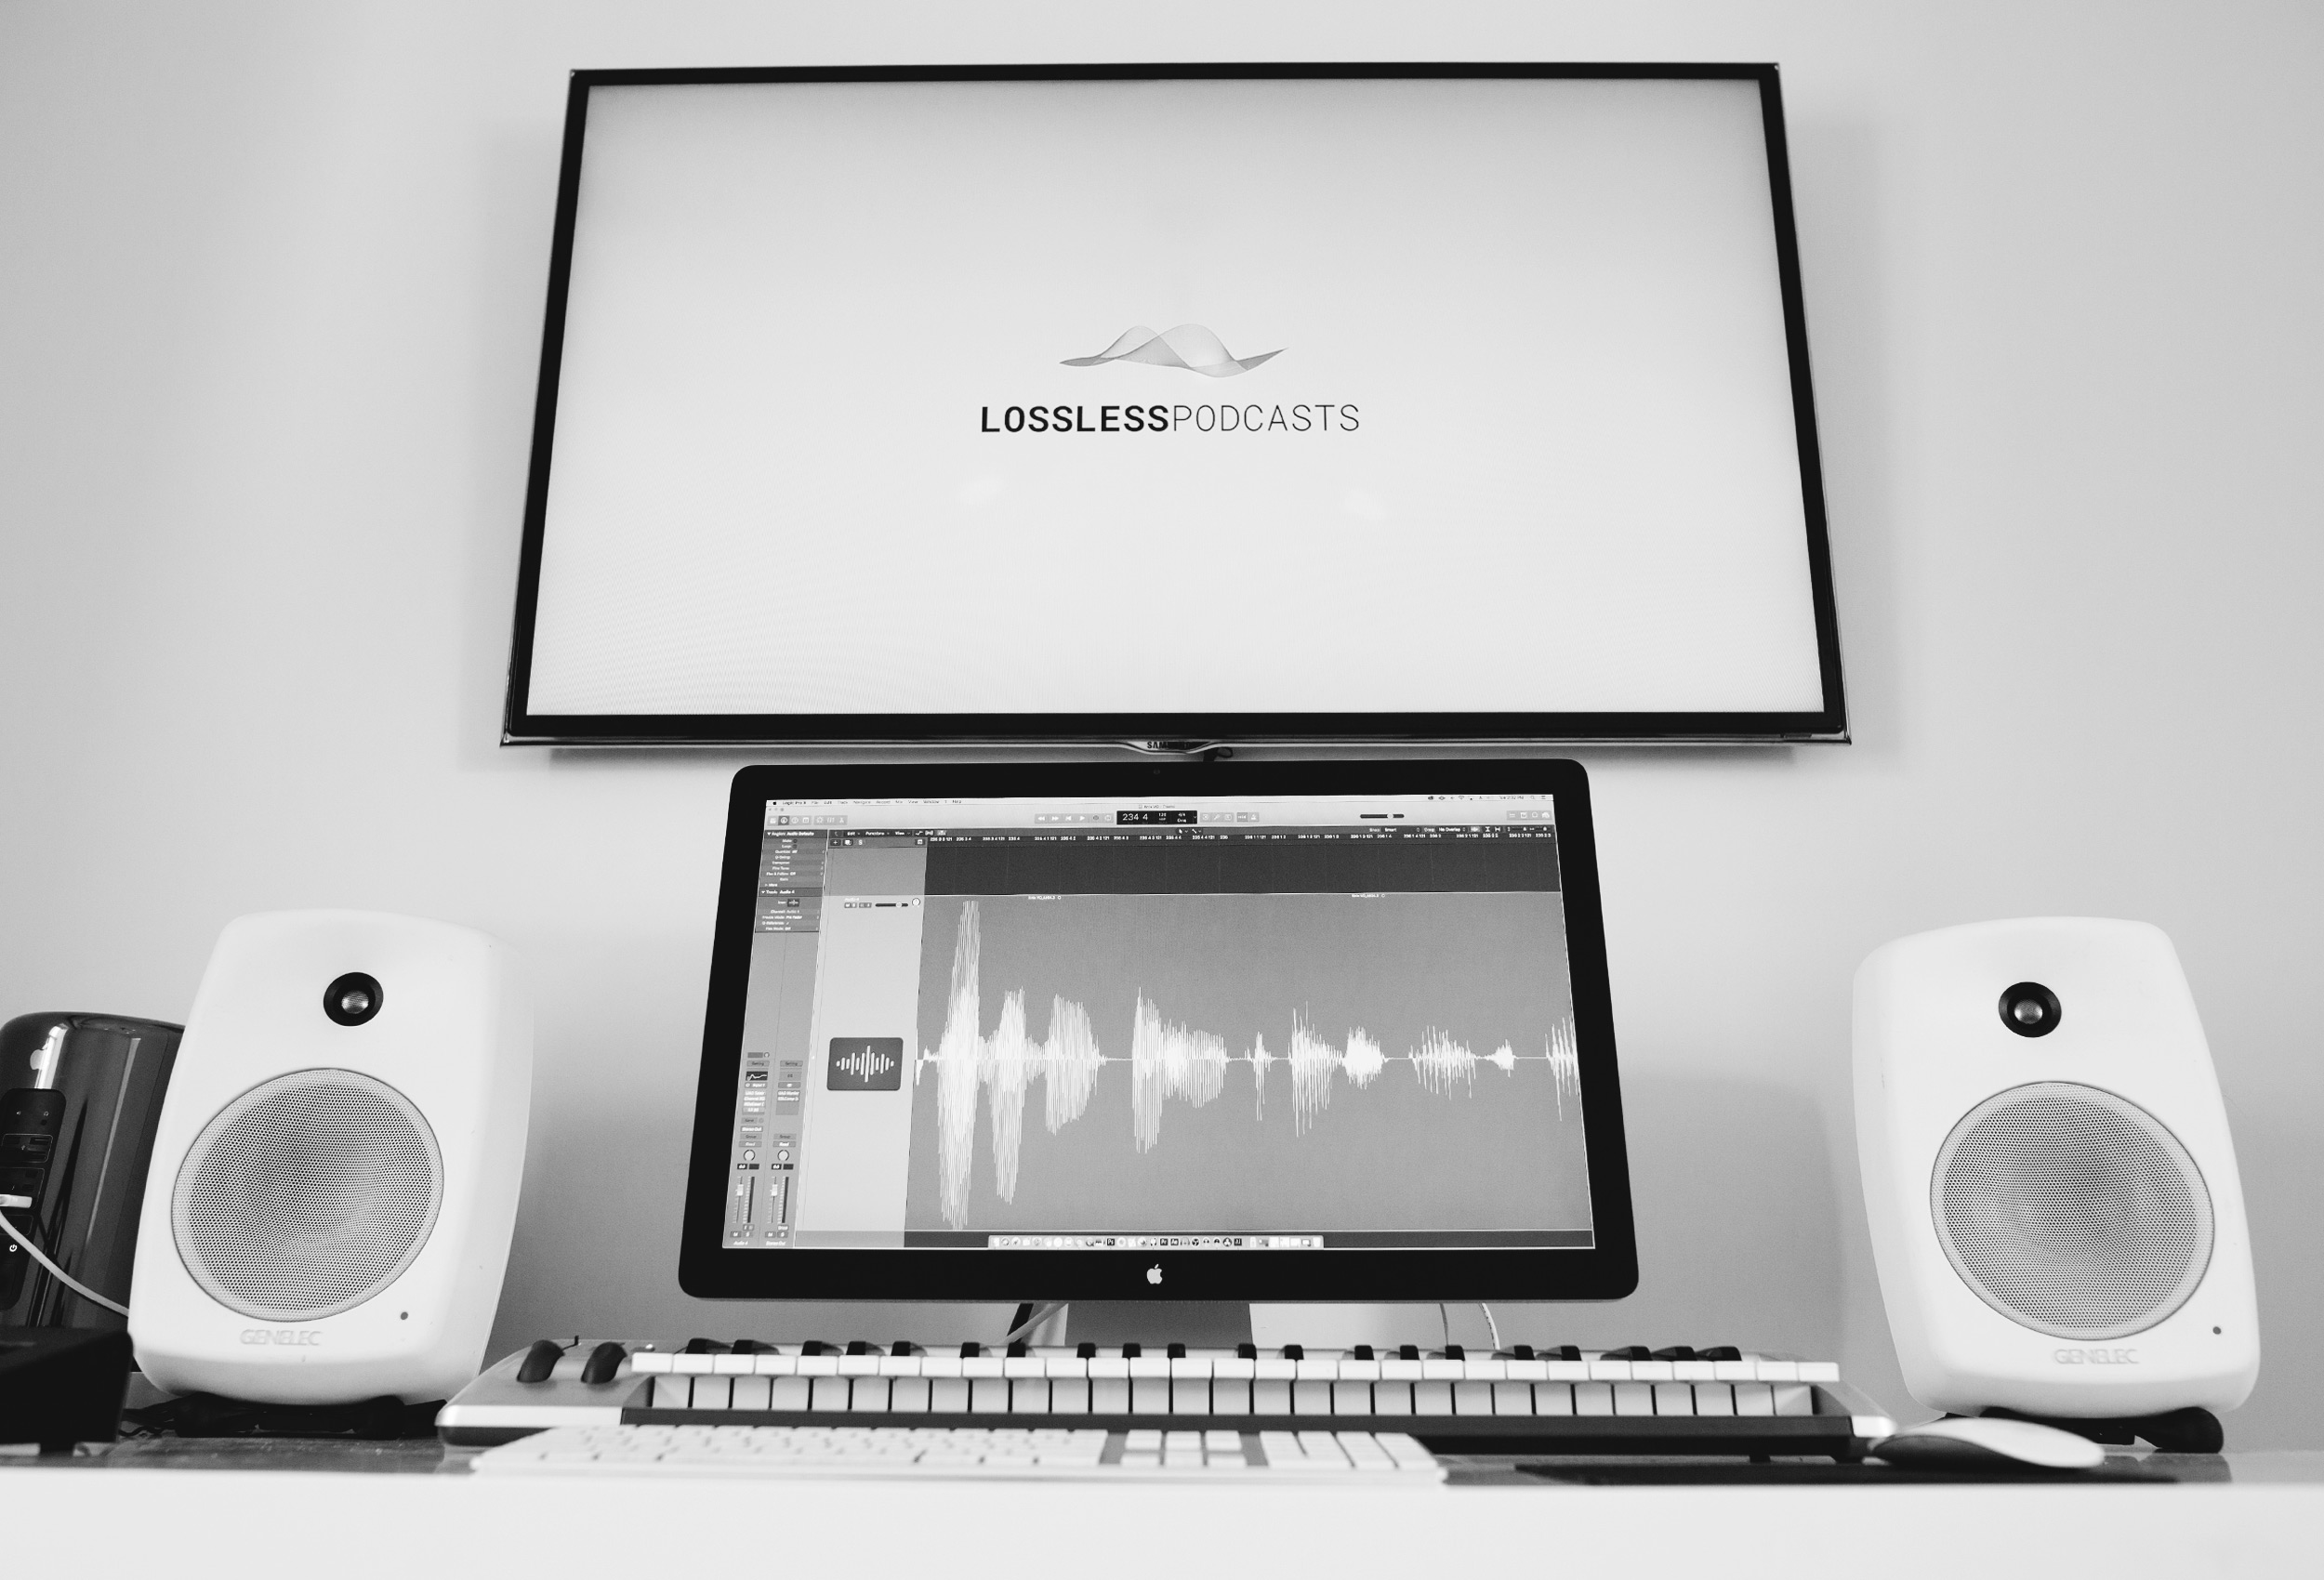 Original Music Production - A Lossless in-house composer makes an original theme and music for all of our shows. Having original music creates a unique tone, connects with specific emotions and delivers the highest level of production.Lossless won the 2018 Webby Award for best podcast original music and sound design.